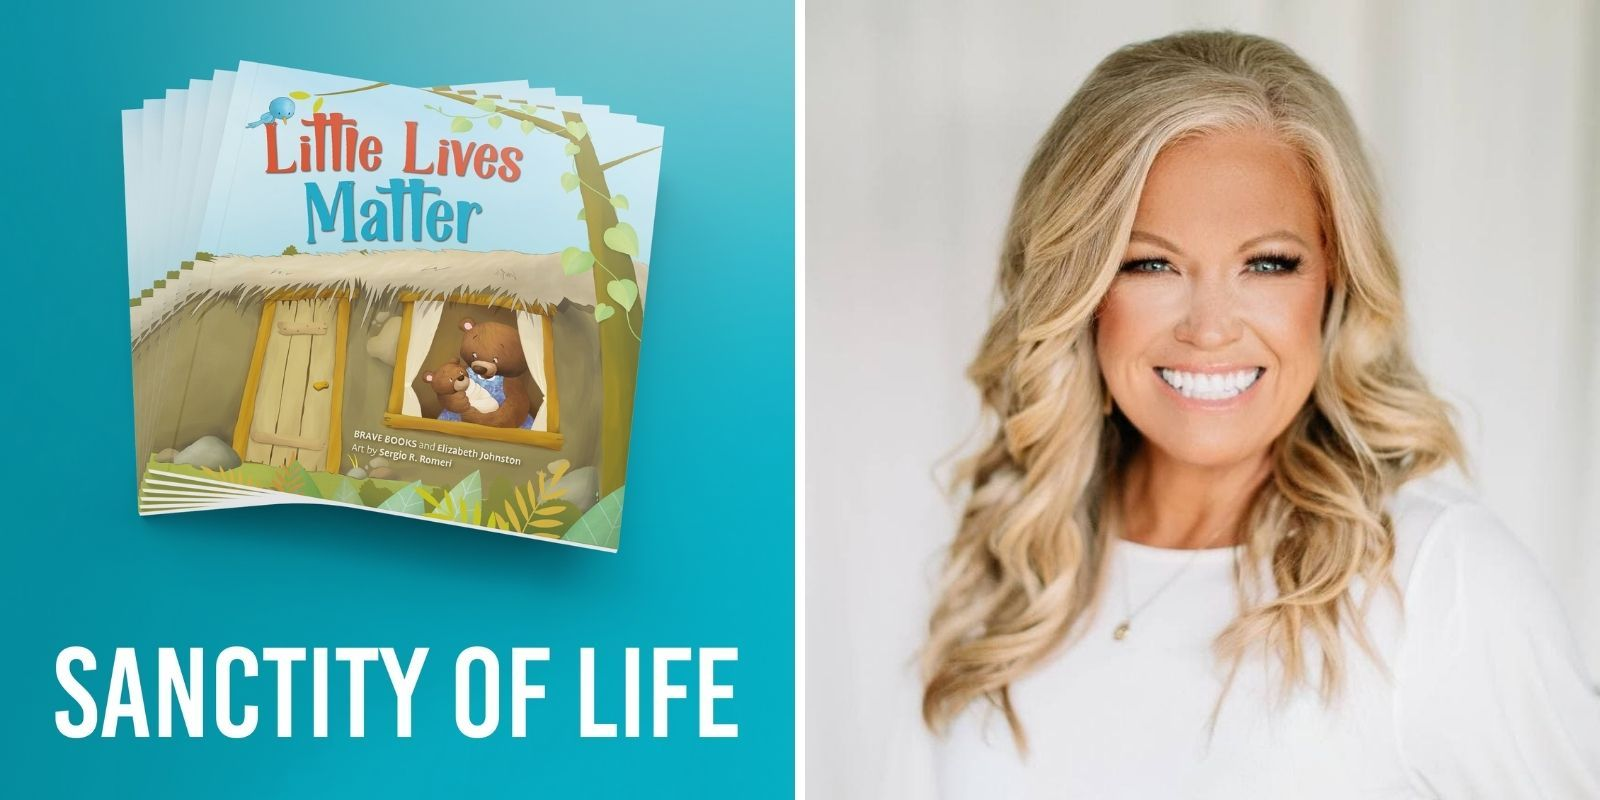 New pro-life children's book teaches kids about the sanctity of life